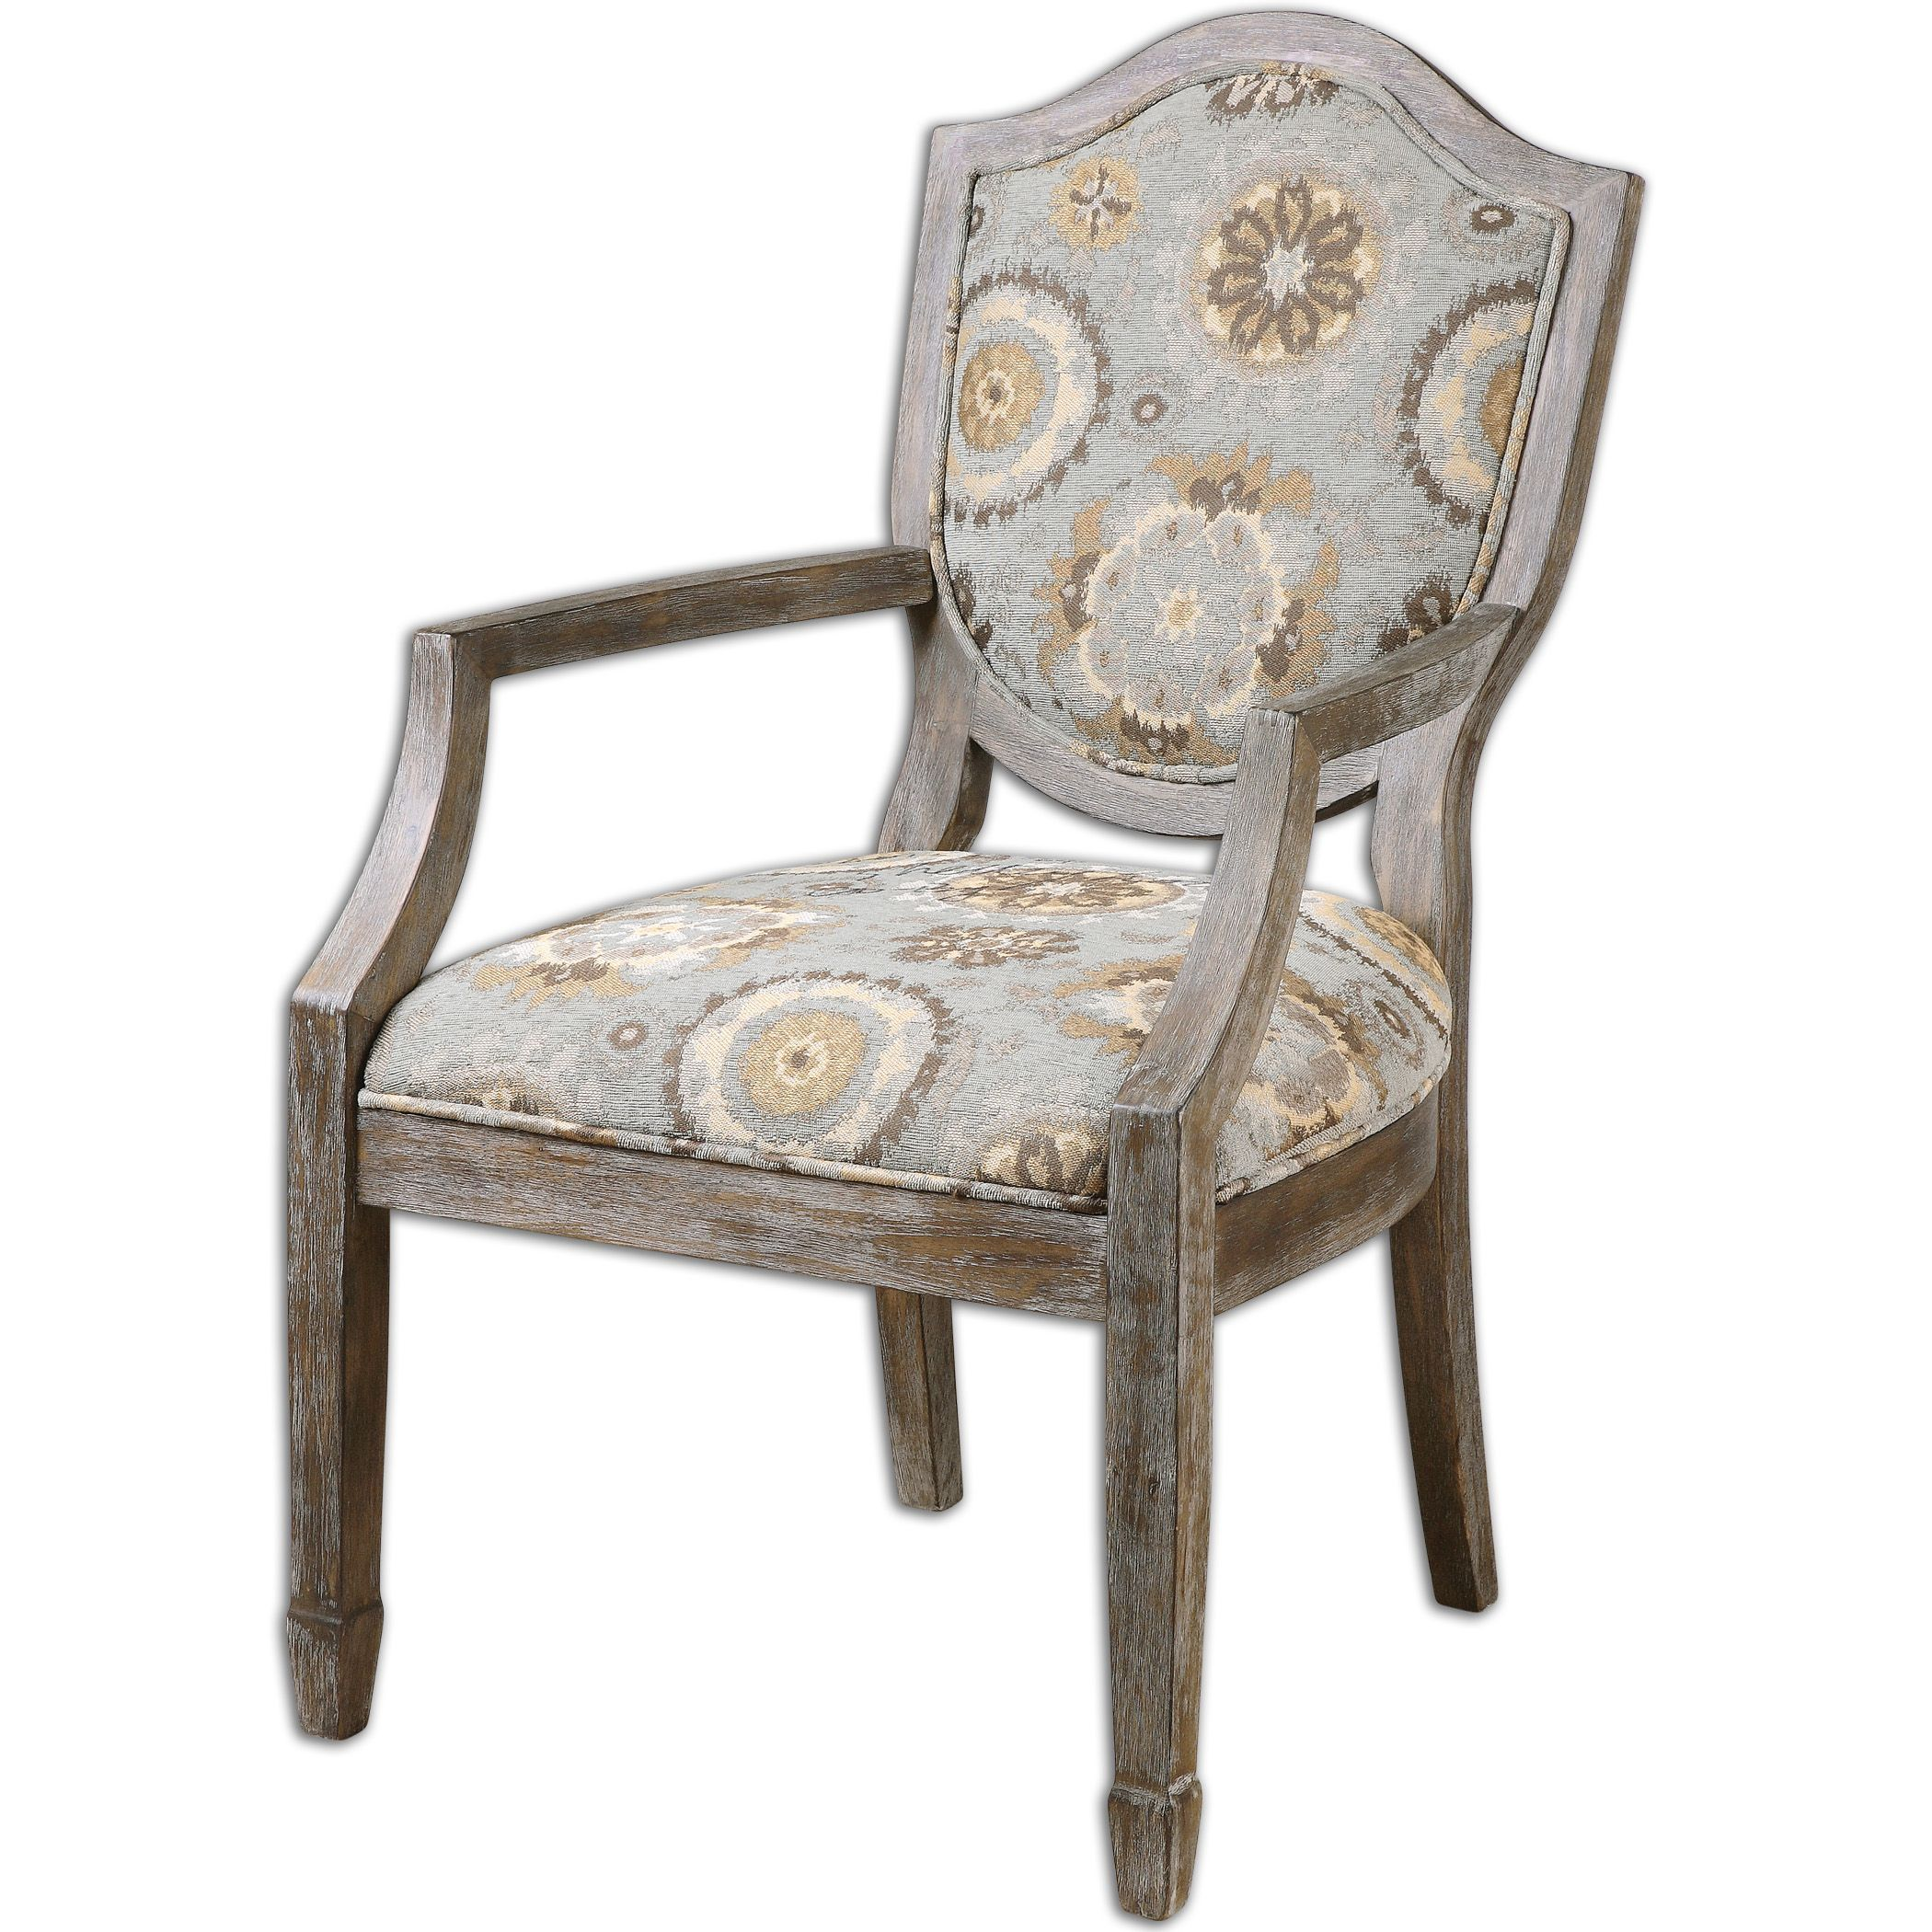 Uttermost Valene Weathered Accent Chair (Floral)